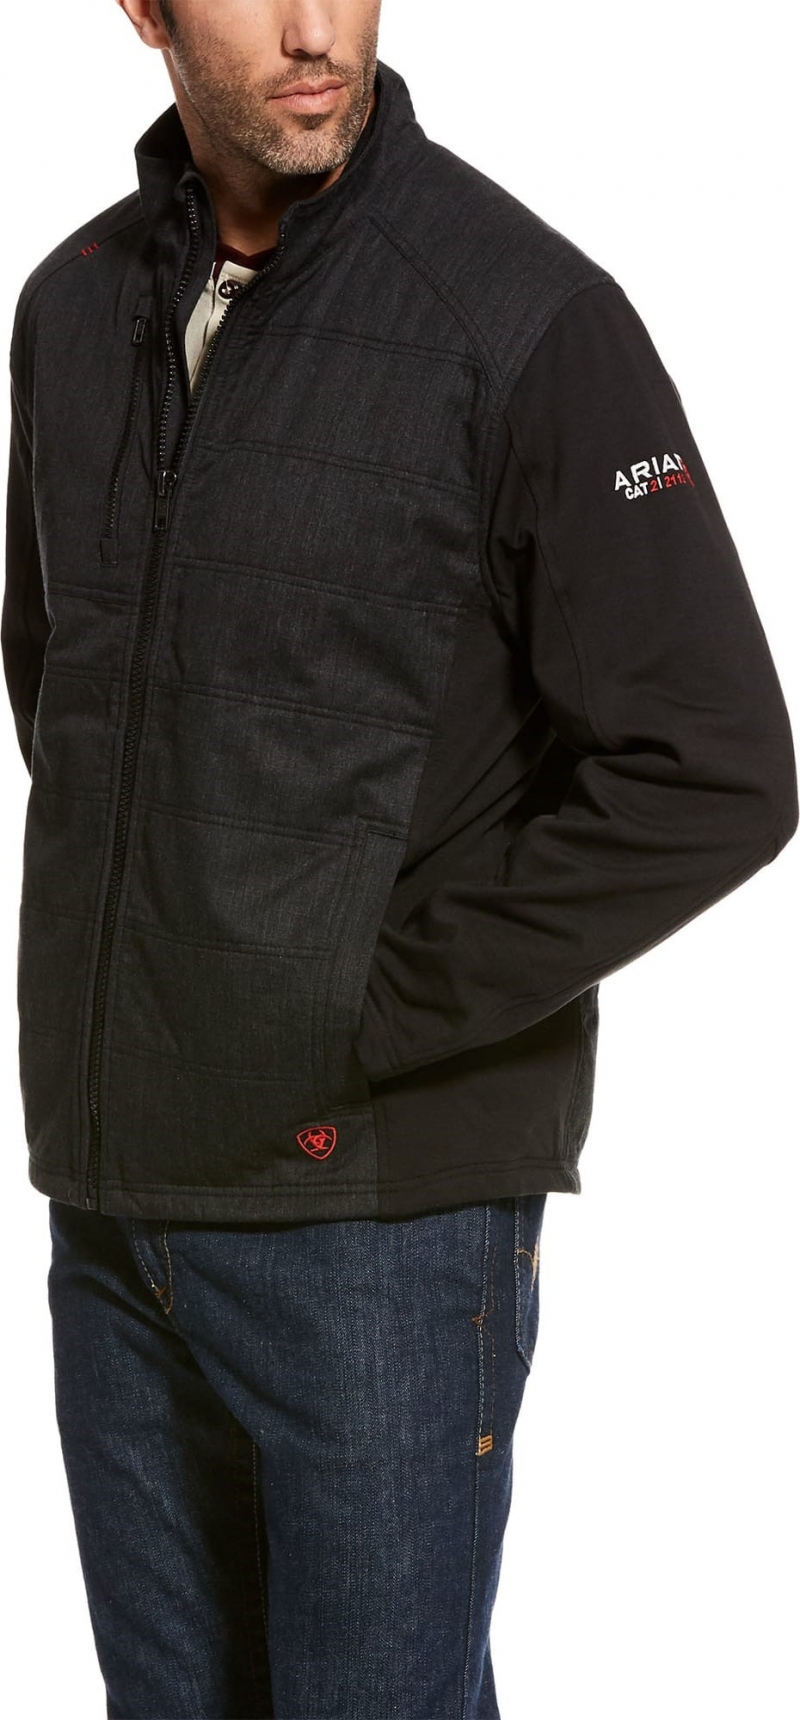 Ariat FR Cloud 9 Insulated Jacket - Black